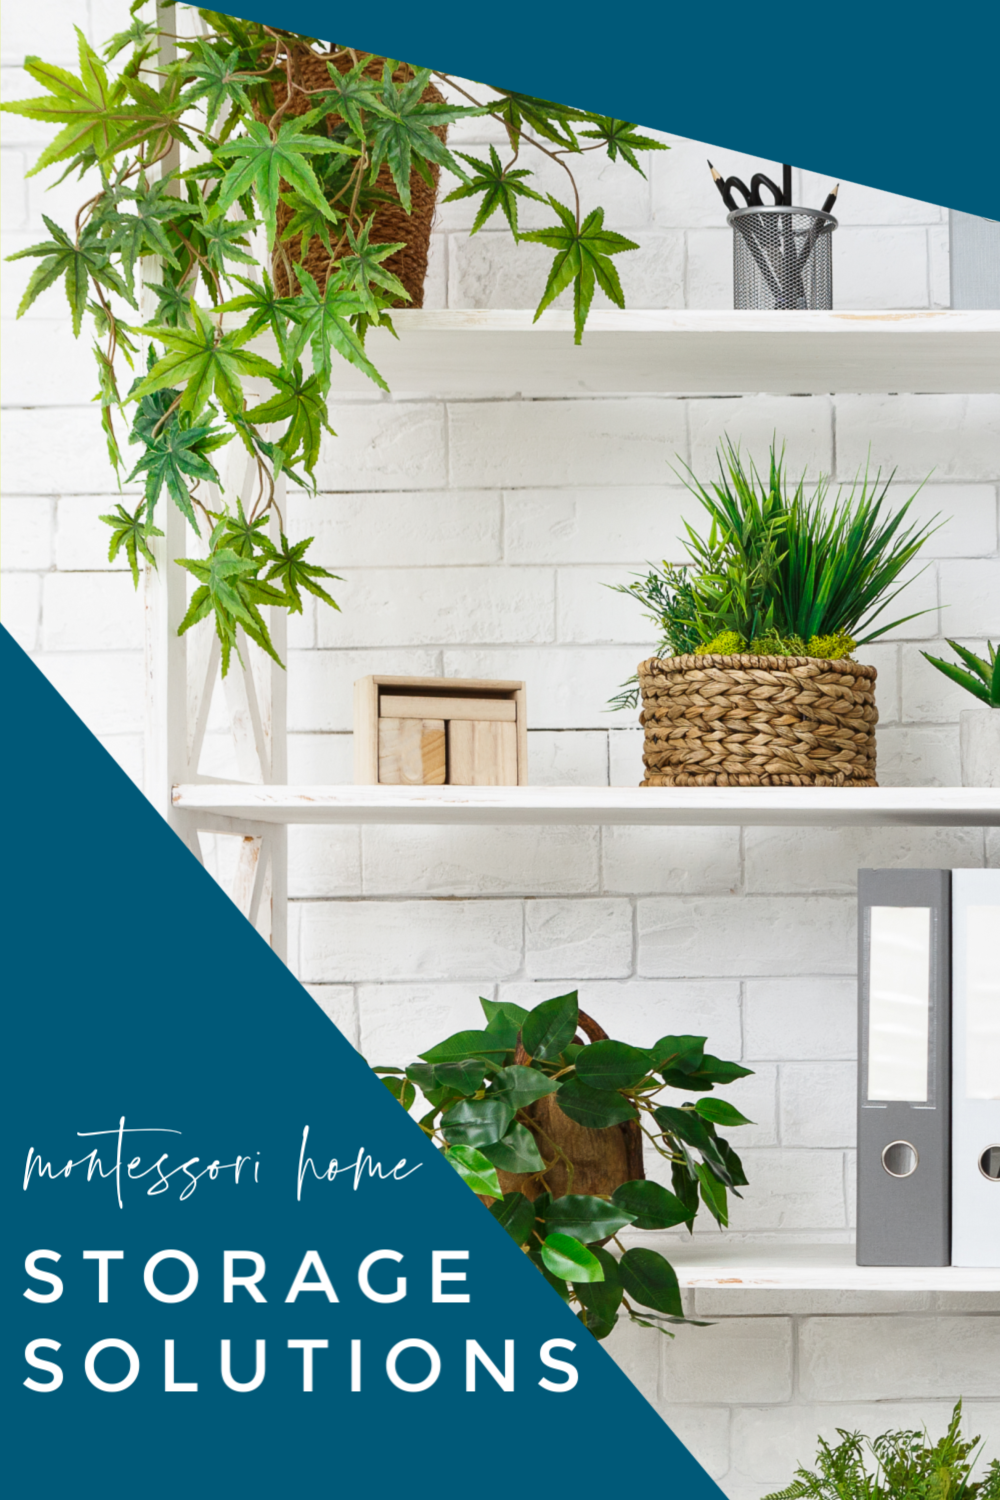 In this Montessori parenting podcast, we take a look at some of the storage and rotation solutions we use as Montessori parents.